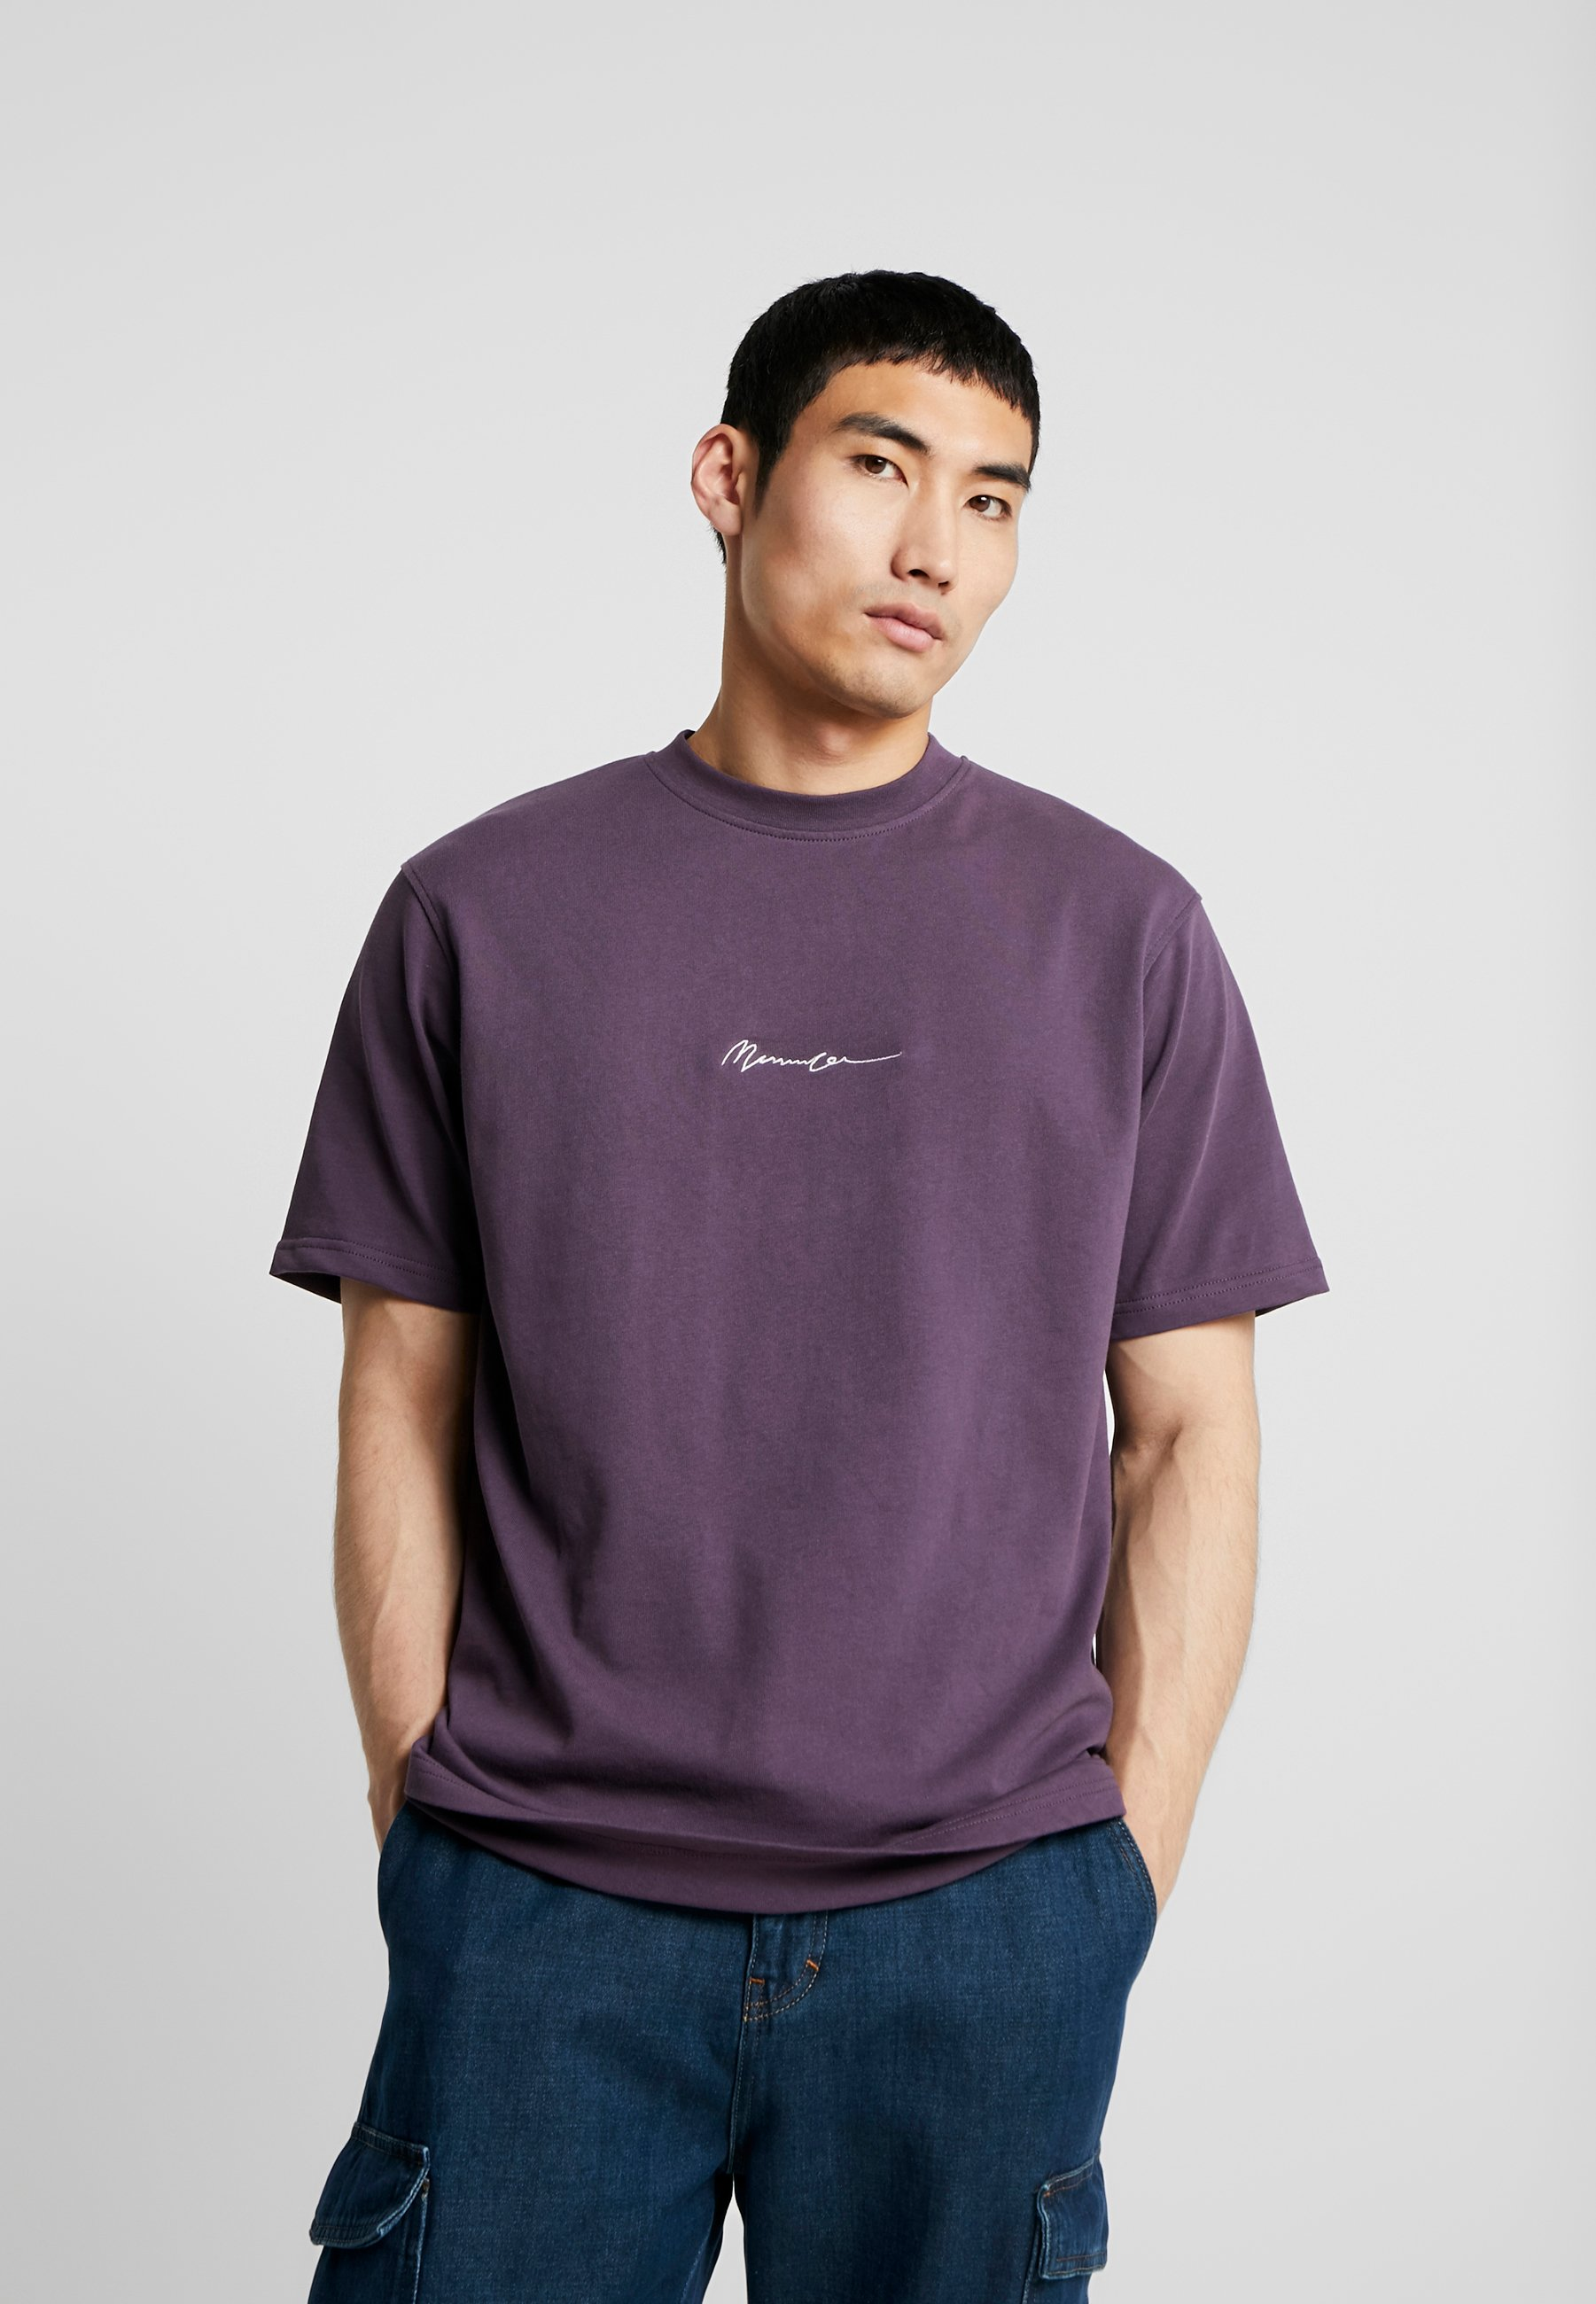 SigT shirt Basique Purple Mennace Essential OXZikPuT